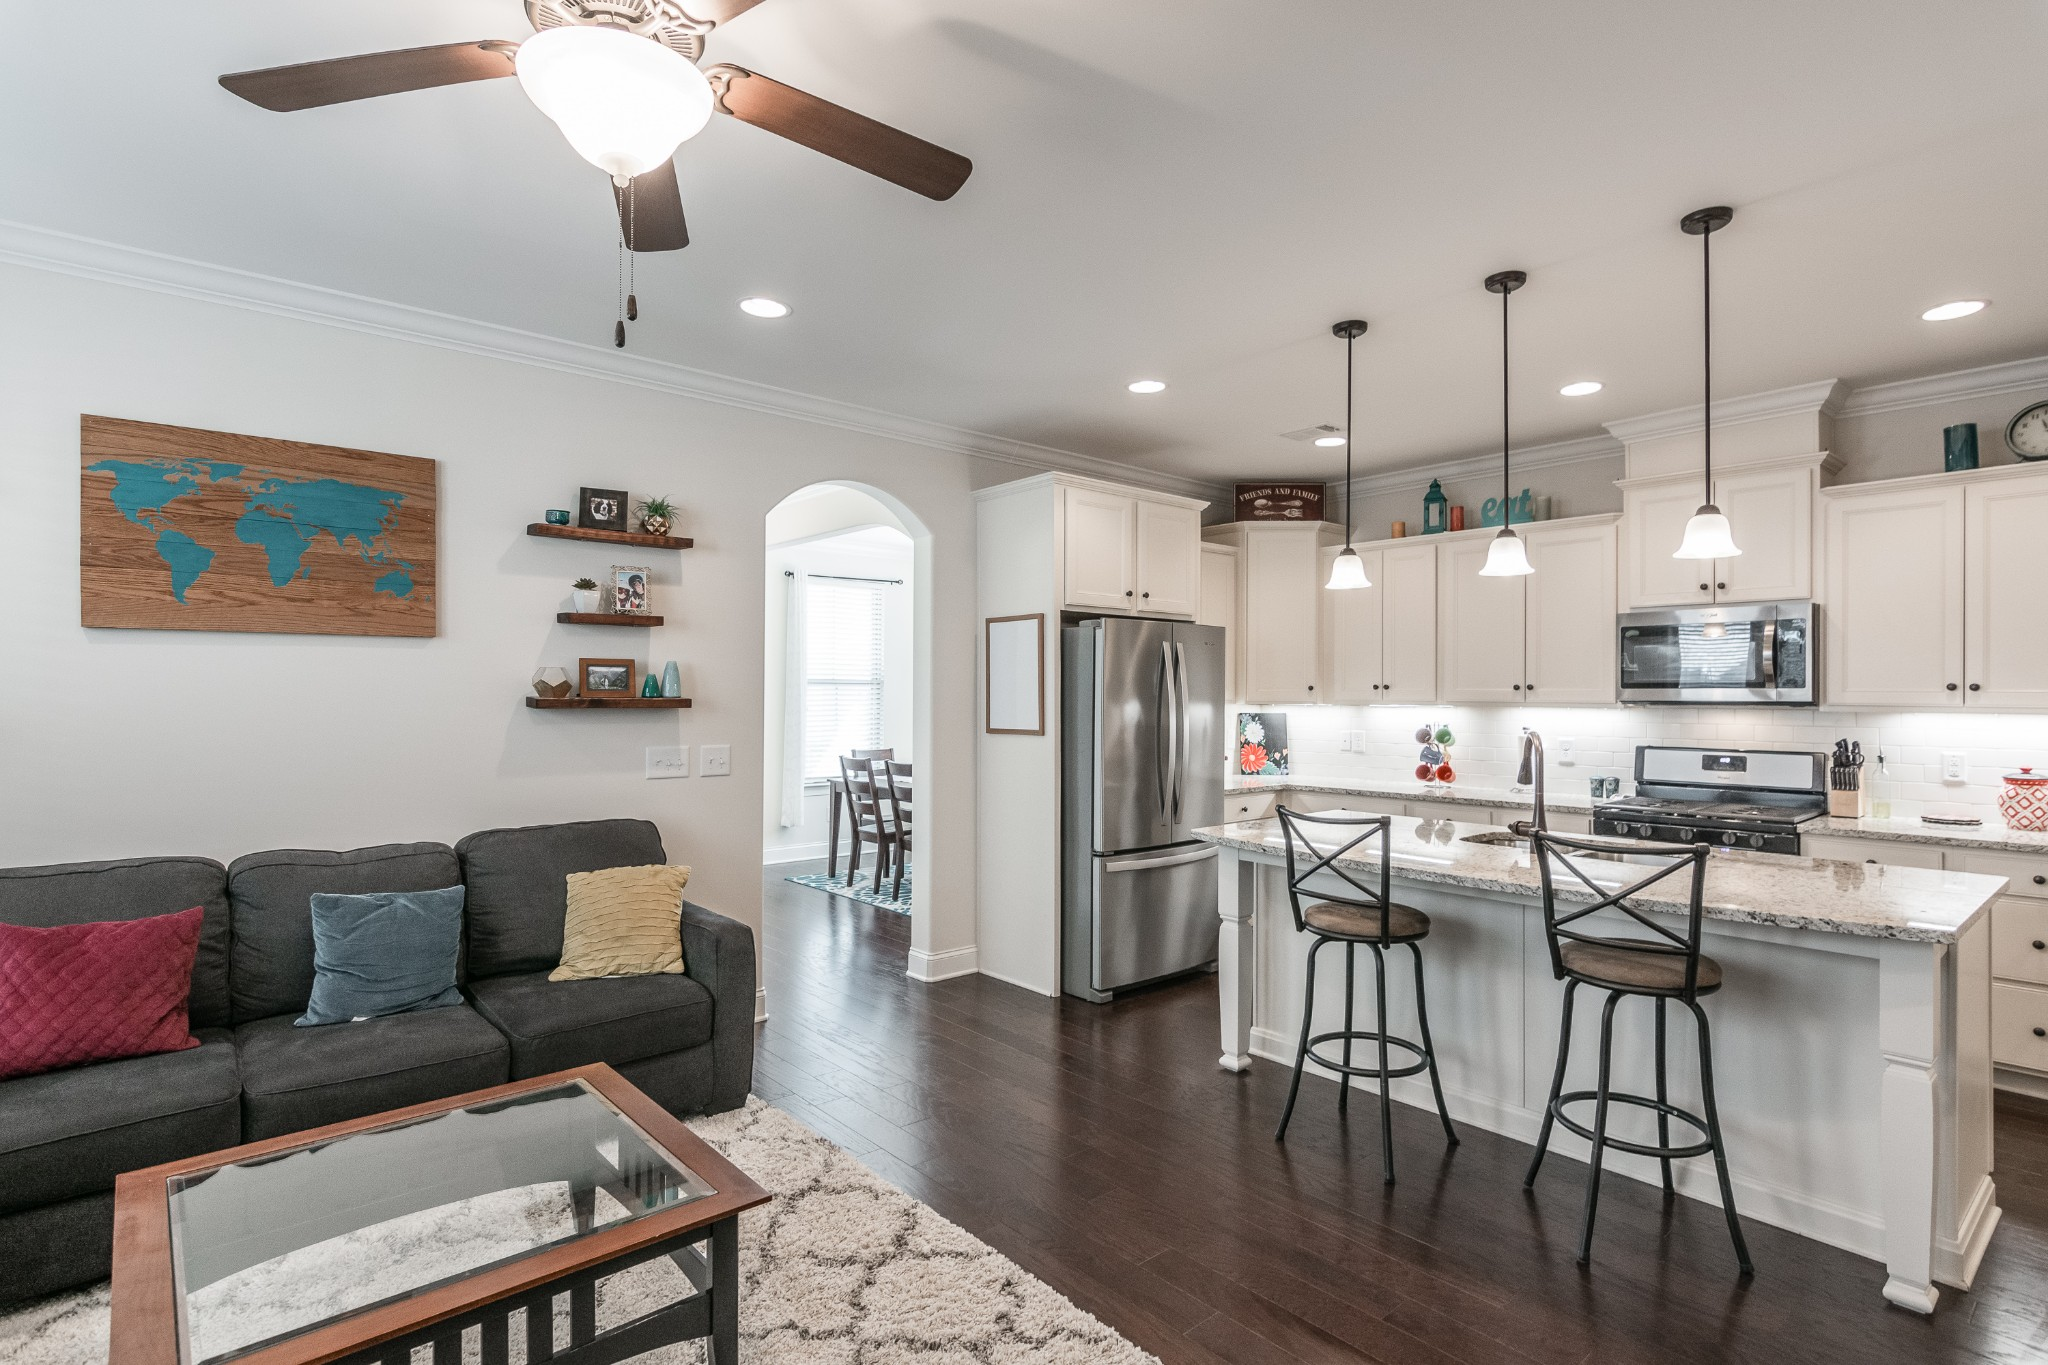 Gorgeous home built in 2017. Very well kept with plenty of upgrades. Walk to The Streets of Indian Lake. Miles of walking trails. Across the street from Hendersonville Public Library. Great small community with only 120 homes.